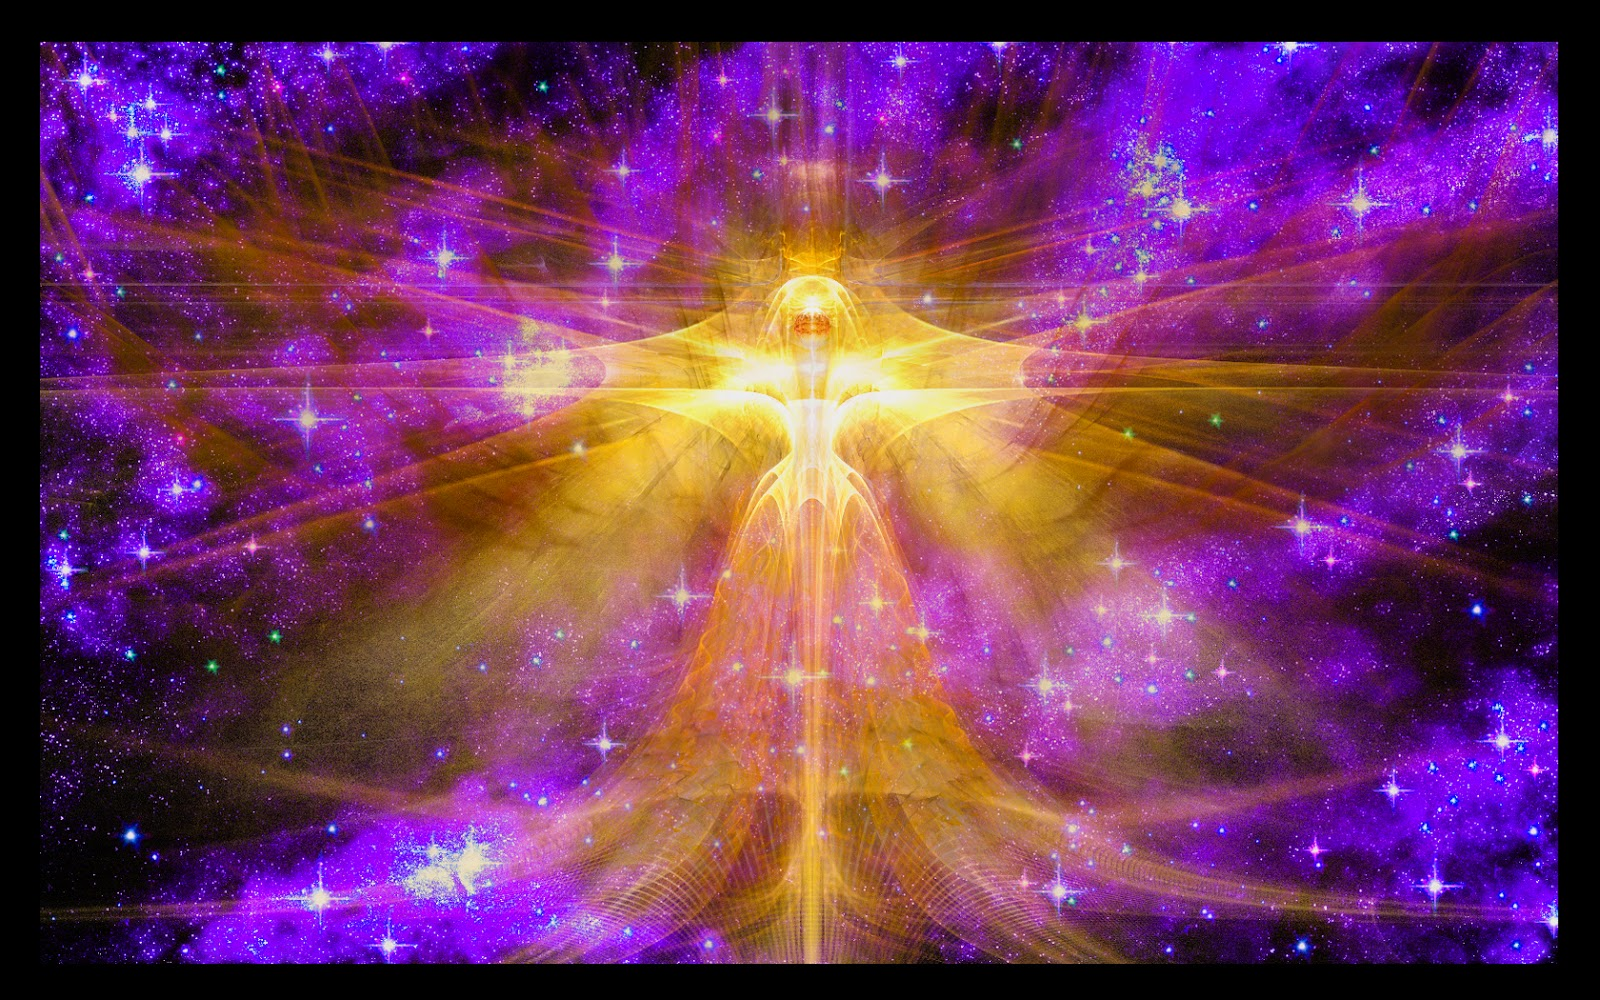 bookspiritually how to work with higher dimensions